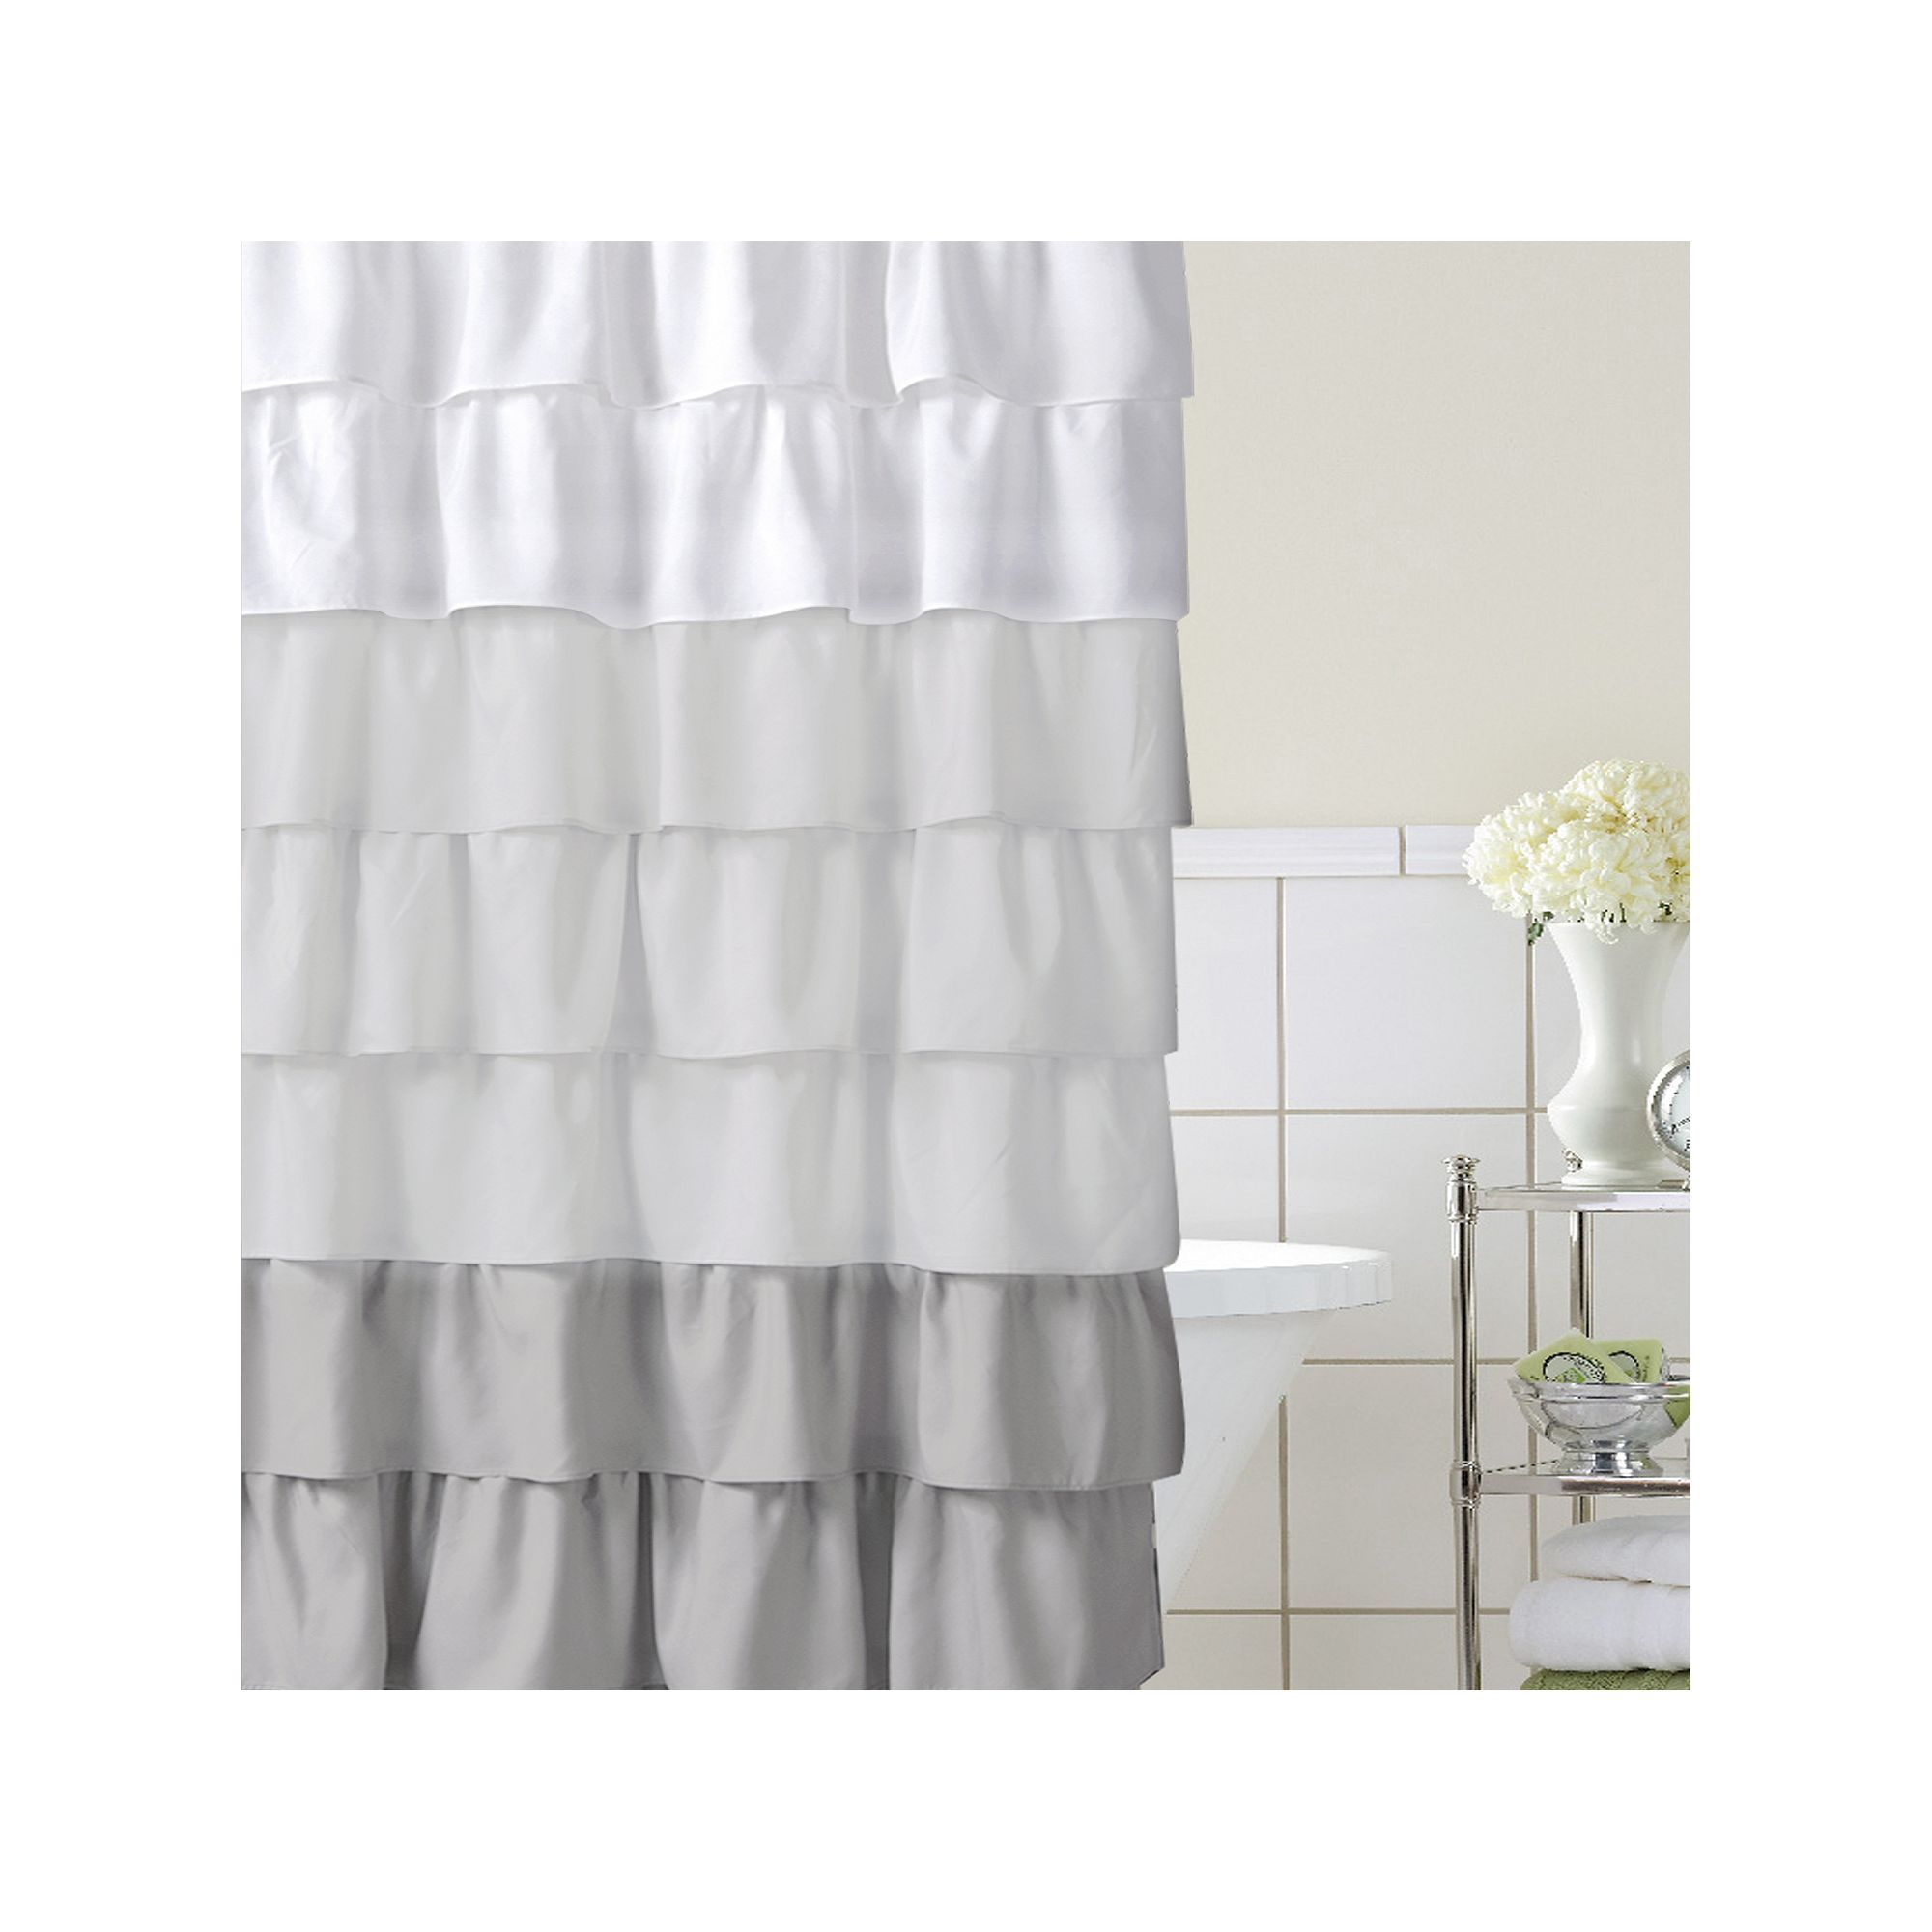 Home Classics Ruffle Ombre Fabric Shower Curtain In 2019 Fabric